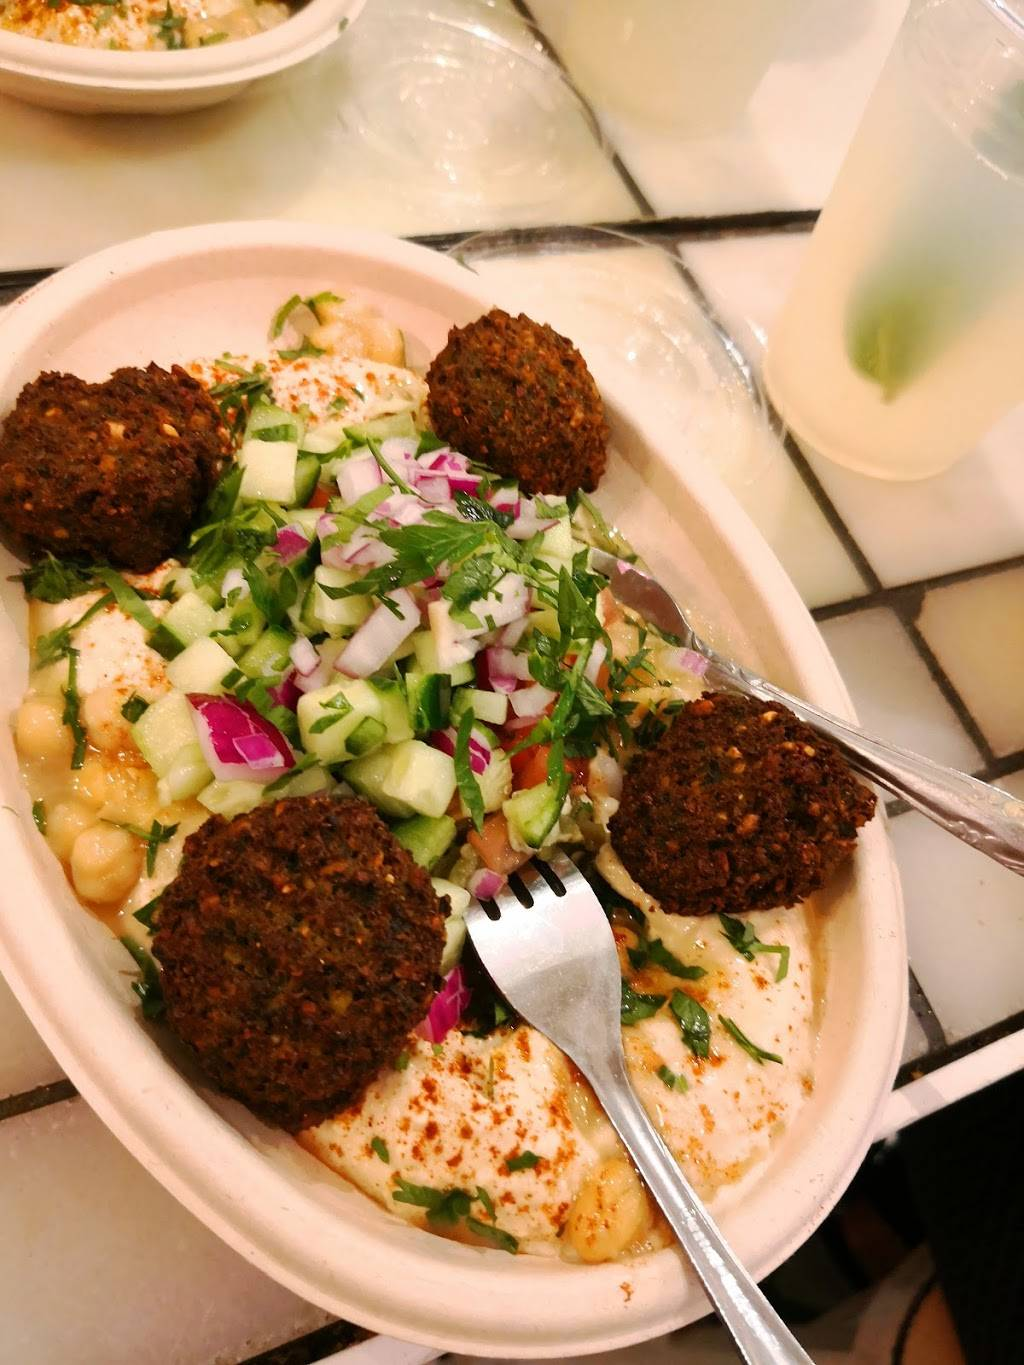 Queen of Falafel | restaurant | 2 Wyckoff Ave, Brooklyn, NY 11237, USA | 7185048628 OR +1 718-504-8628